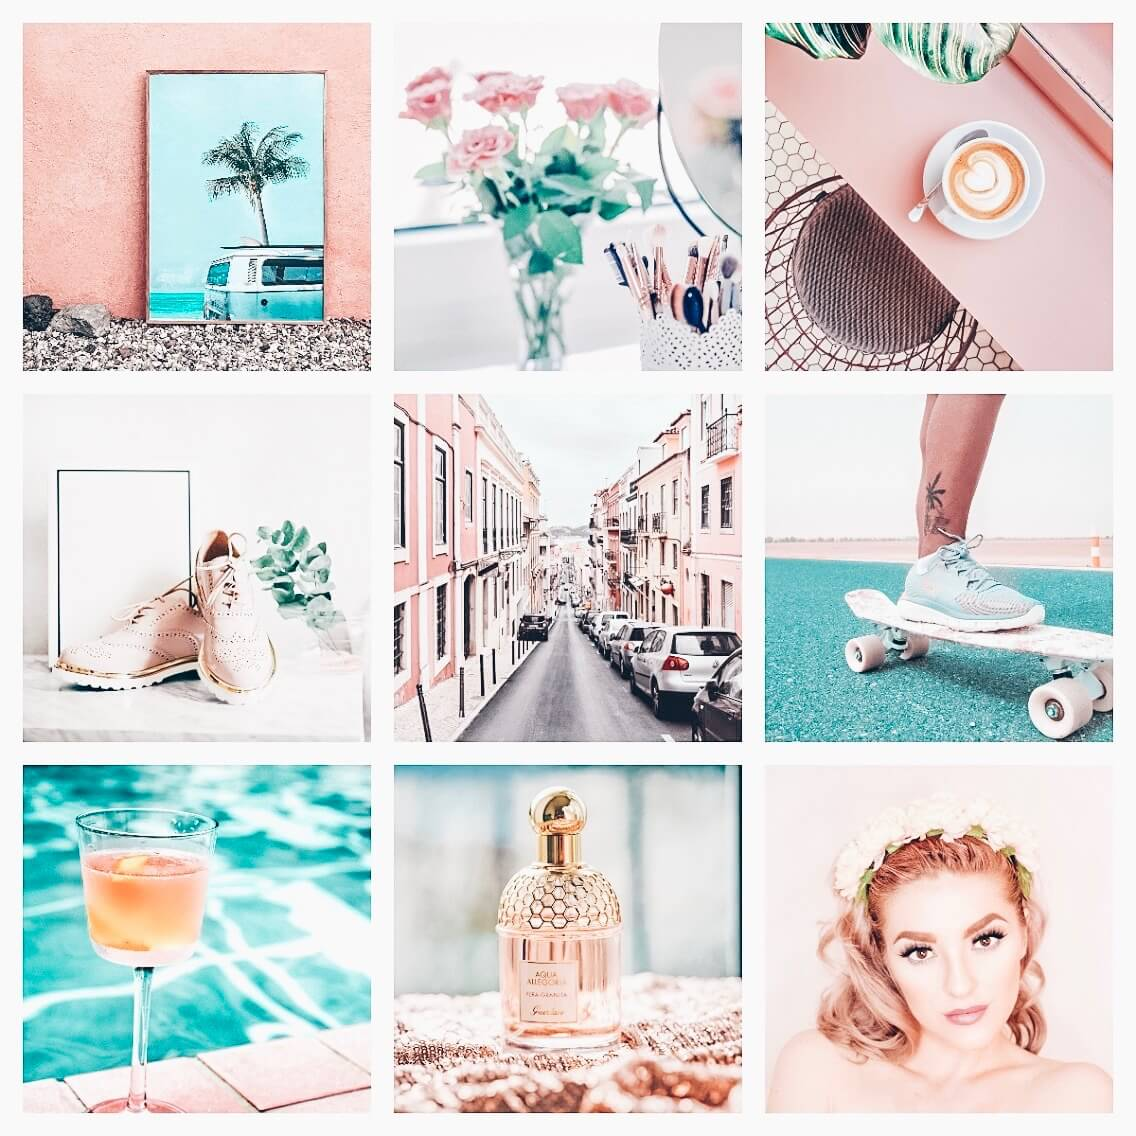 Beauty Blogger moodboard preset filters Pixgrade for mobile and desktop